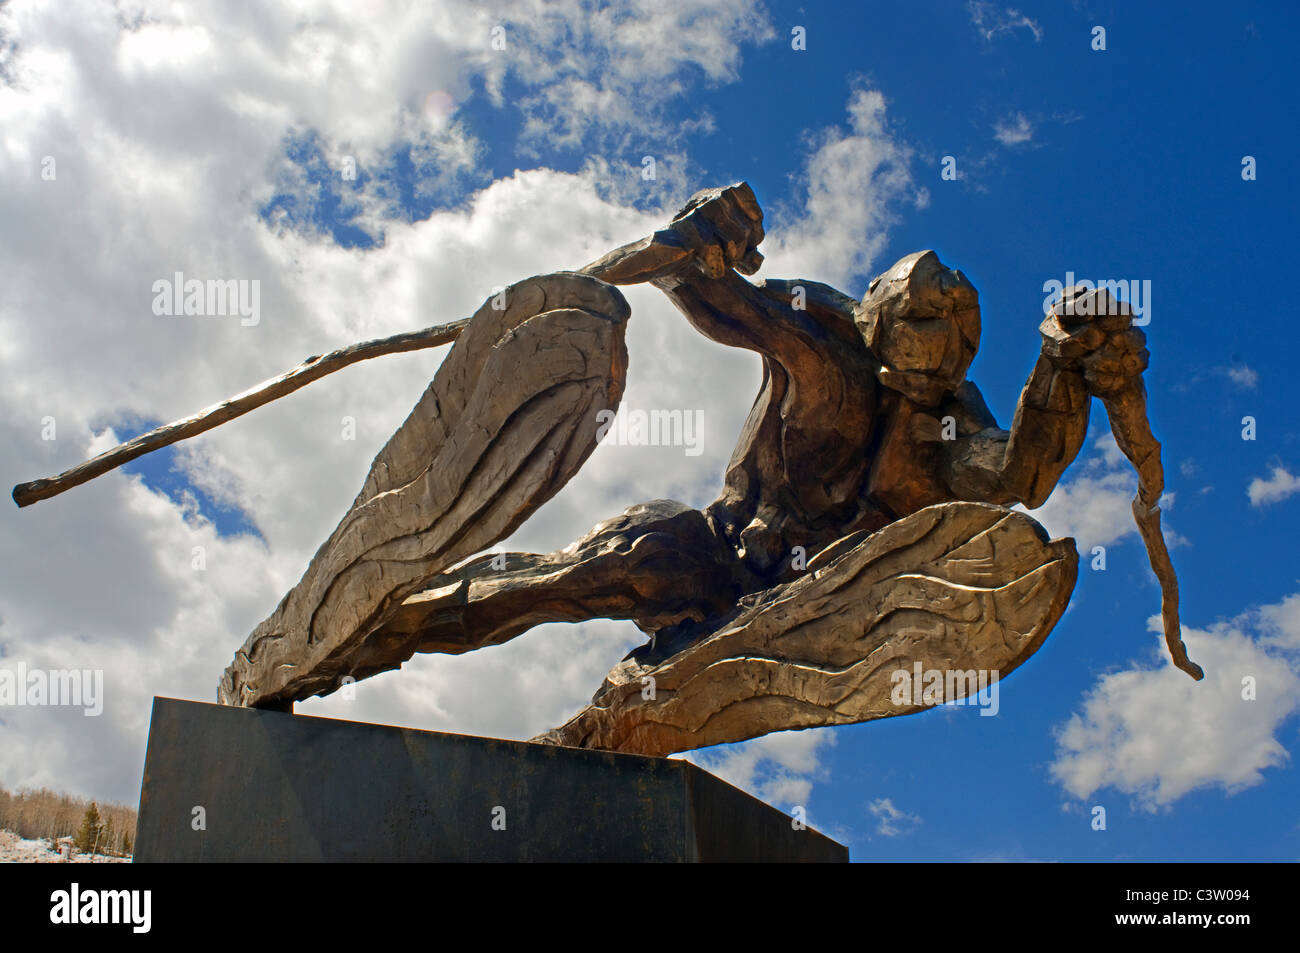 Bronze sculpture in Vail Co. - Stock Image